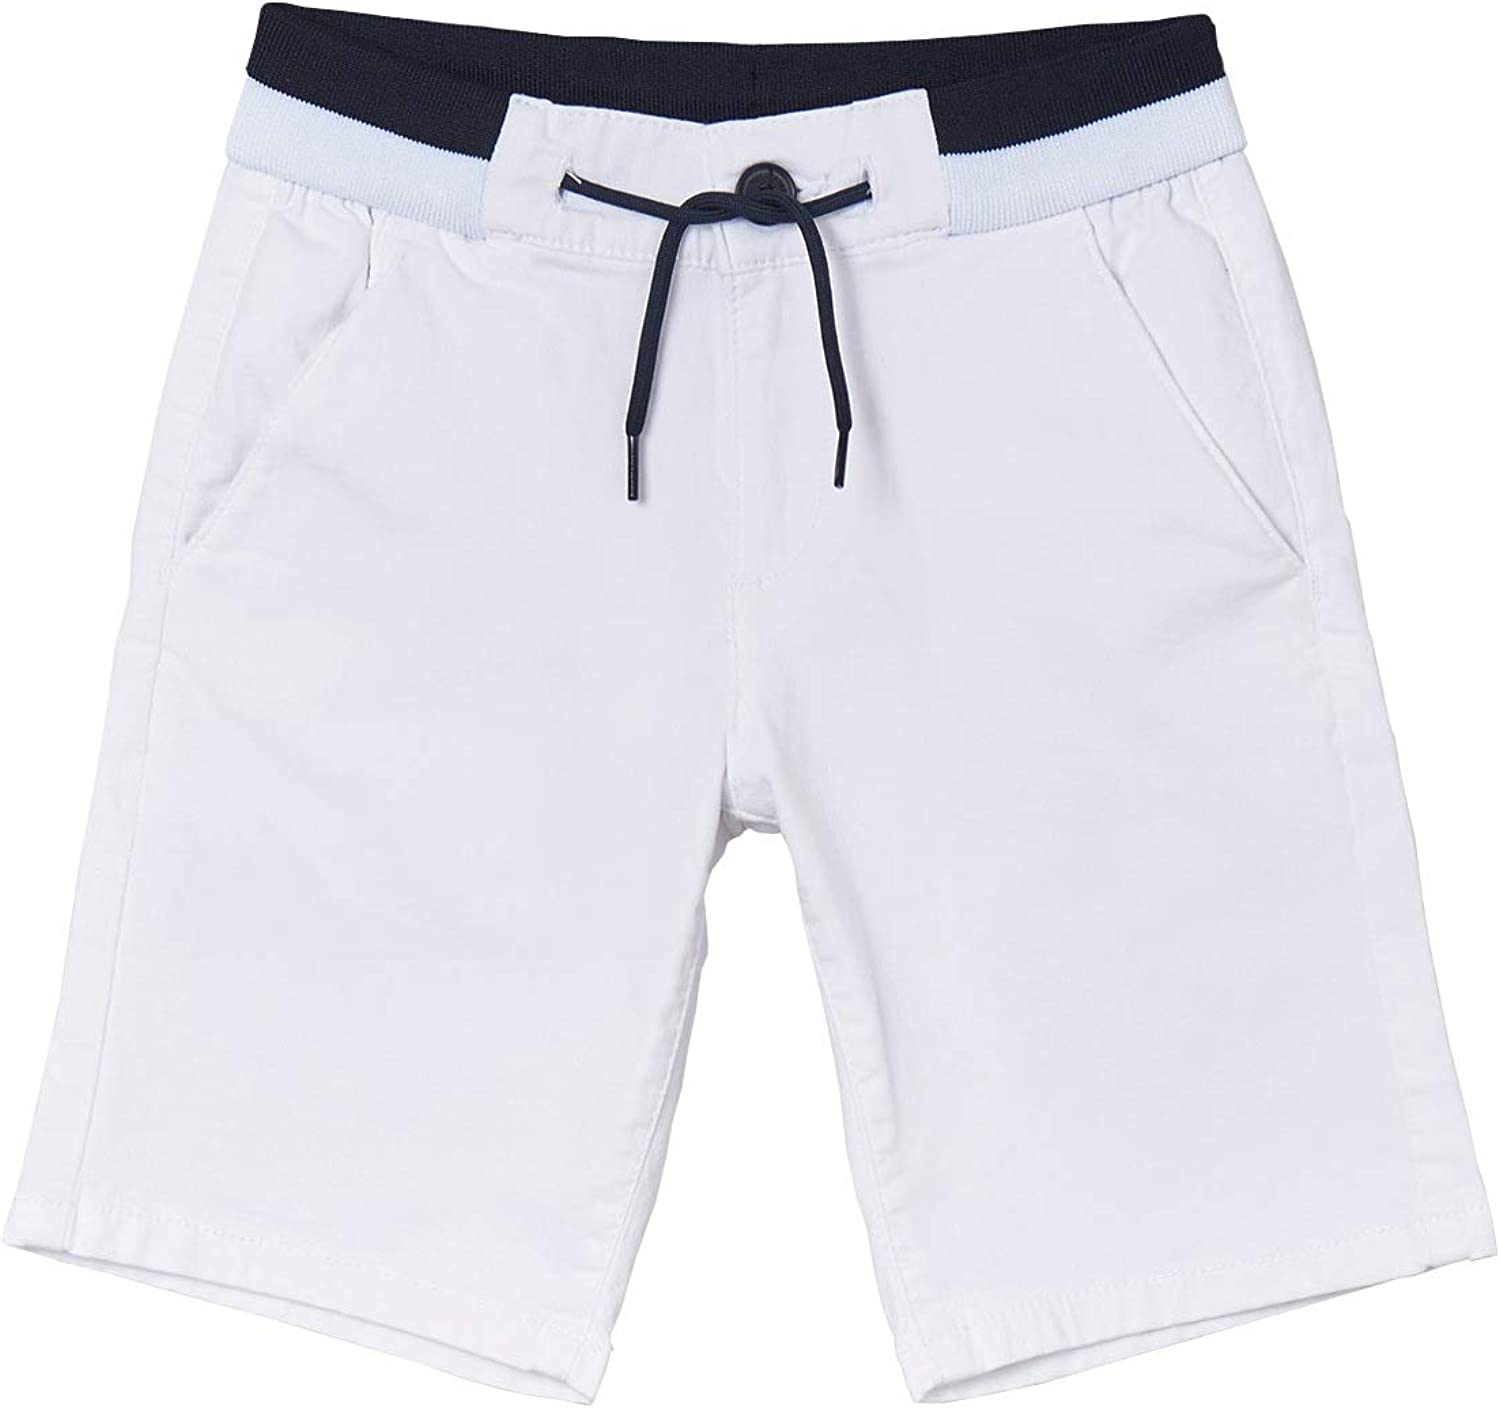 Mayoral - Structured Shorts Boys Large-scale Bombing new work sale White for 6289